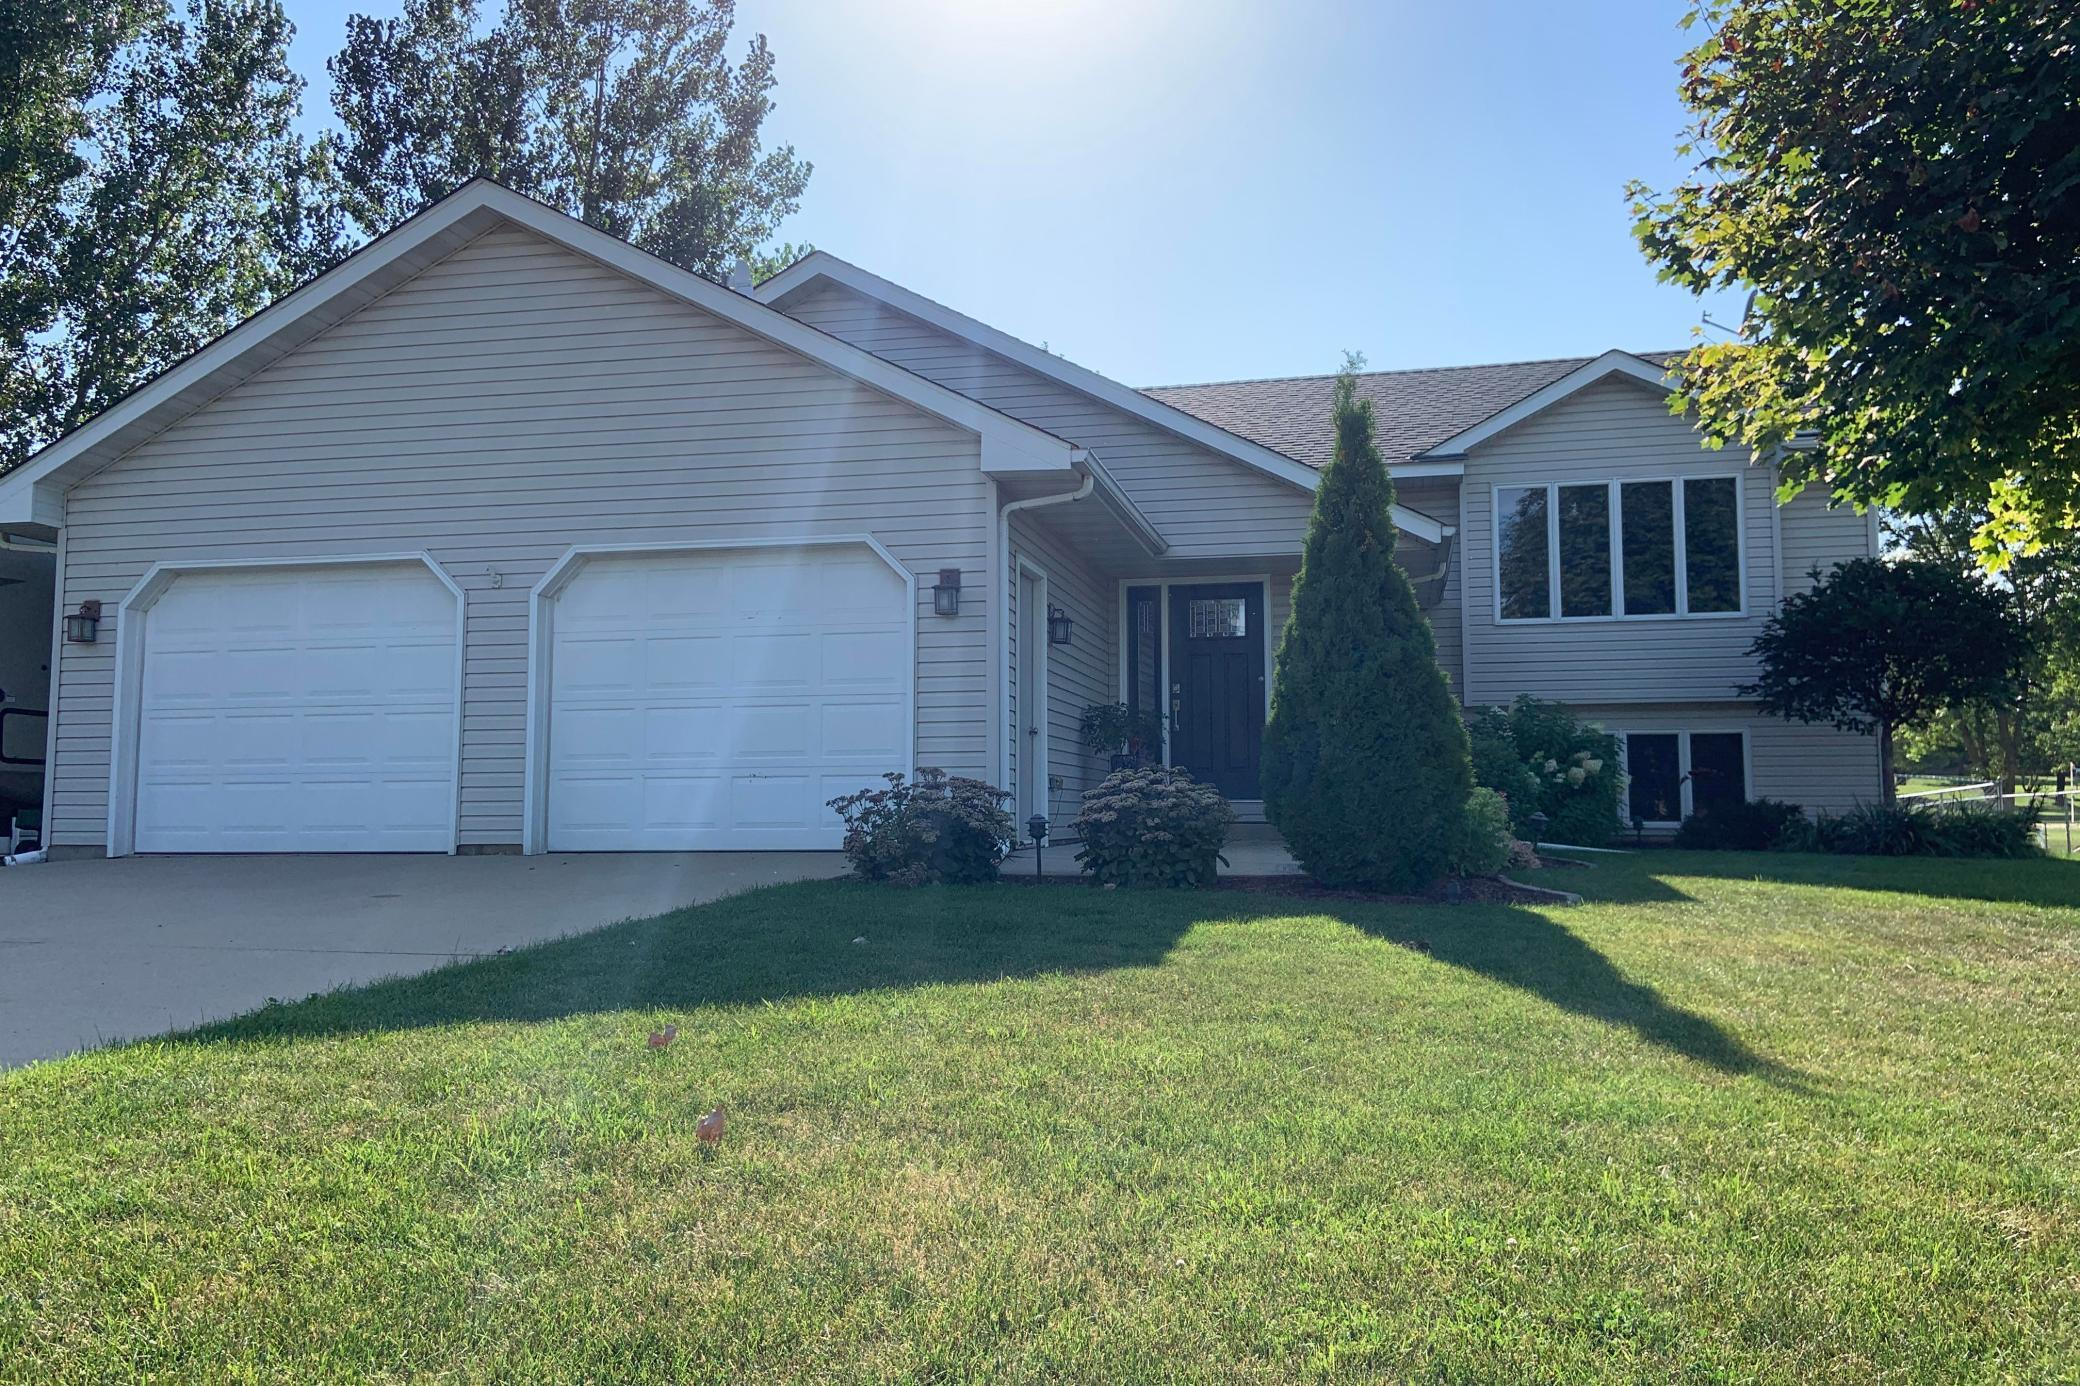 920 1st Street Property Photo - West Concord, MN real estate listing